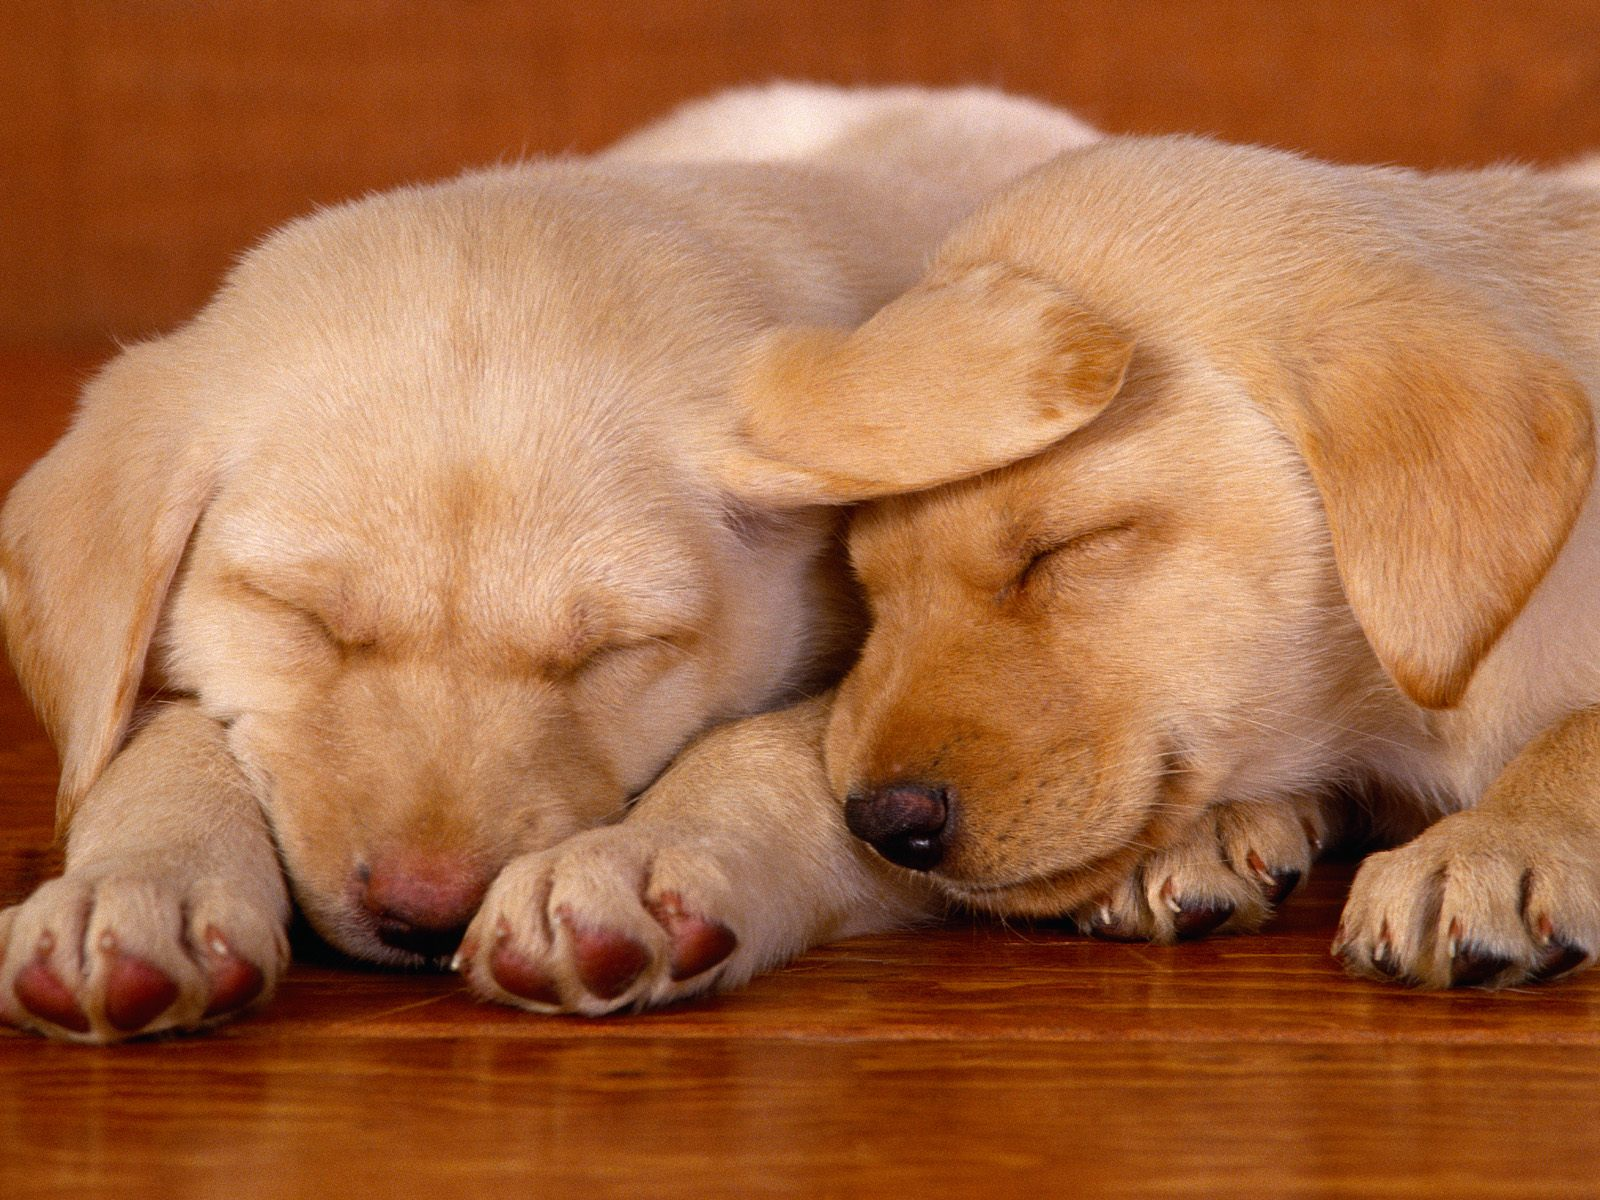 http://2.bp.blogspot.com/-8ZOe9NmZSUw/TqY5eFIC4KI/AAAAAAAABw8/G1-8HevXW1k/s1600/dogs-high-resolution-wallpaper-10.jpg